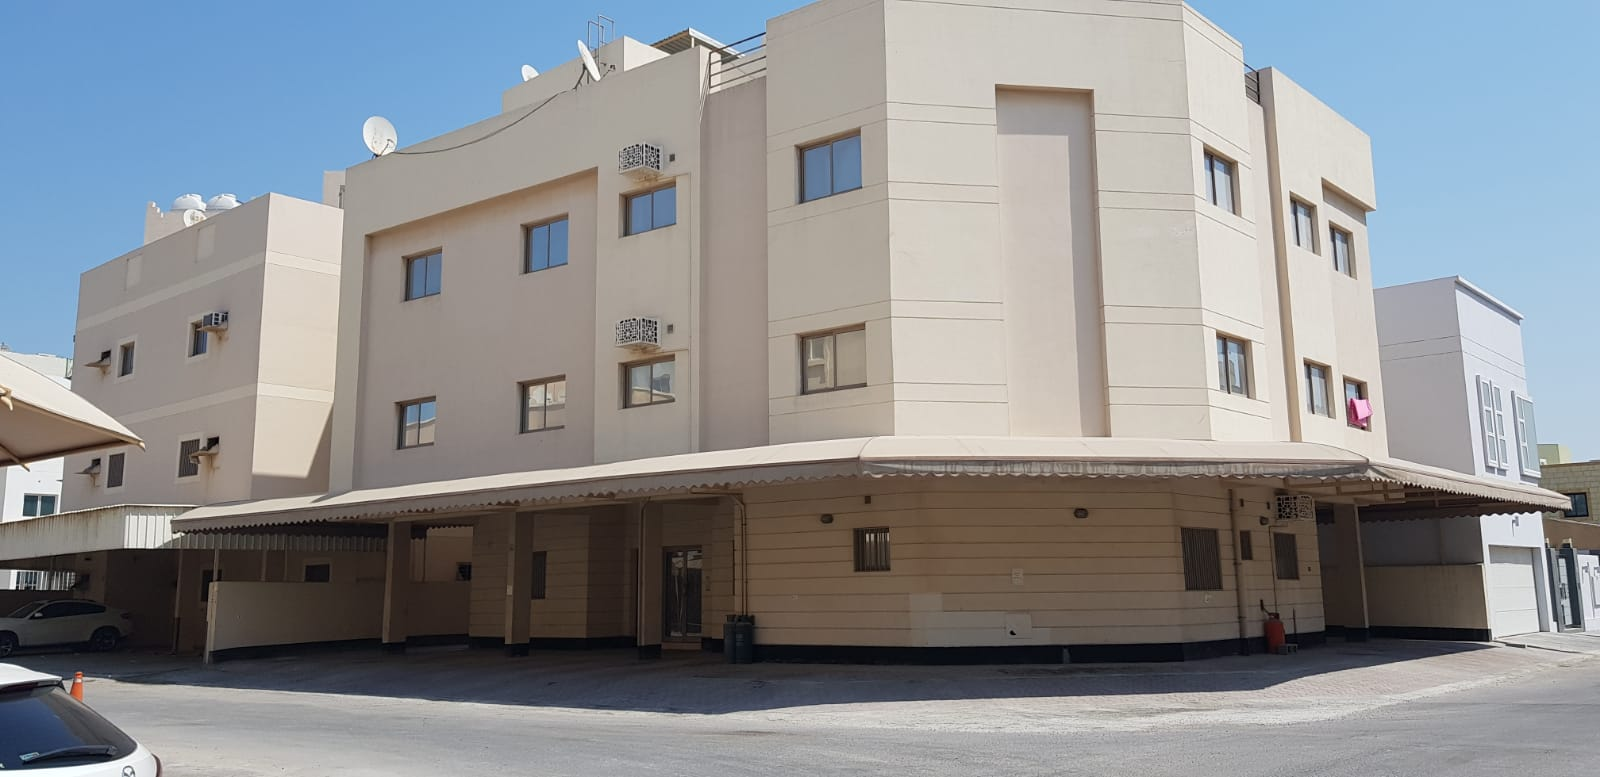 For sale a flat in Sanad in ground floor Ref: SAN-AZ-003